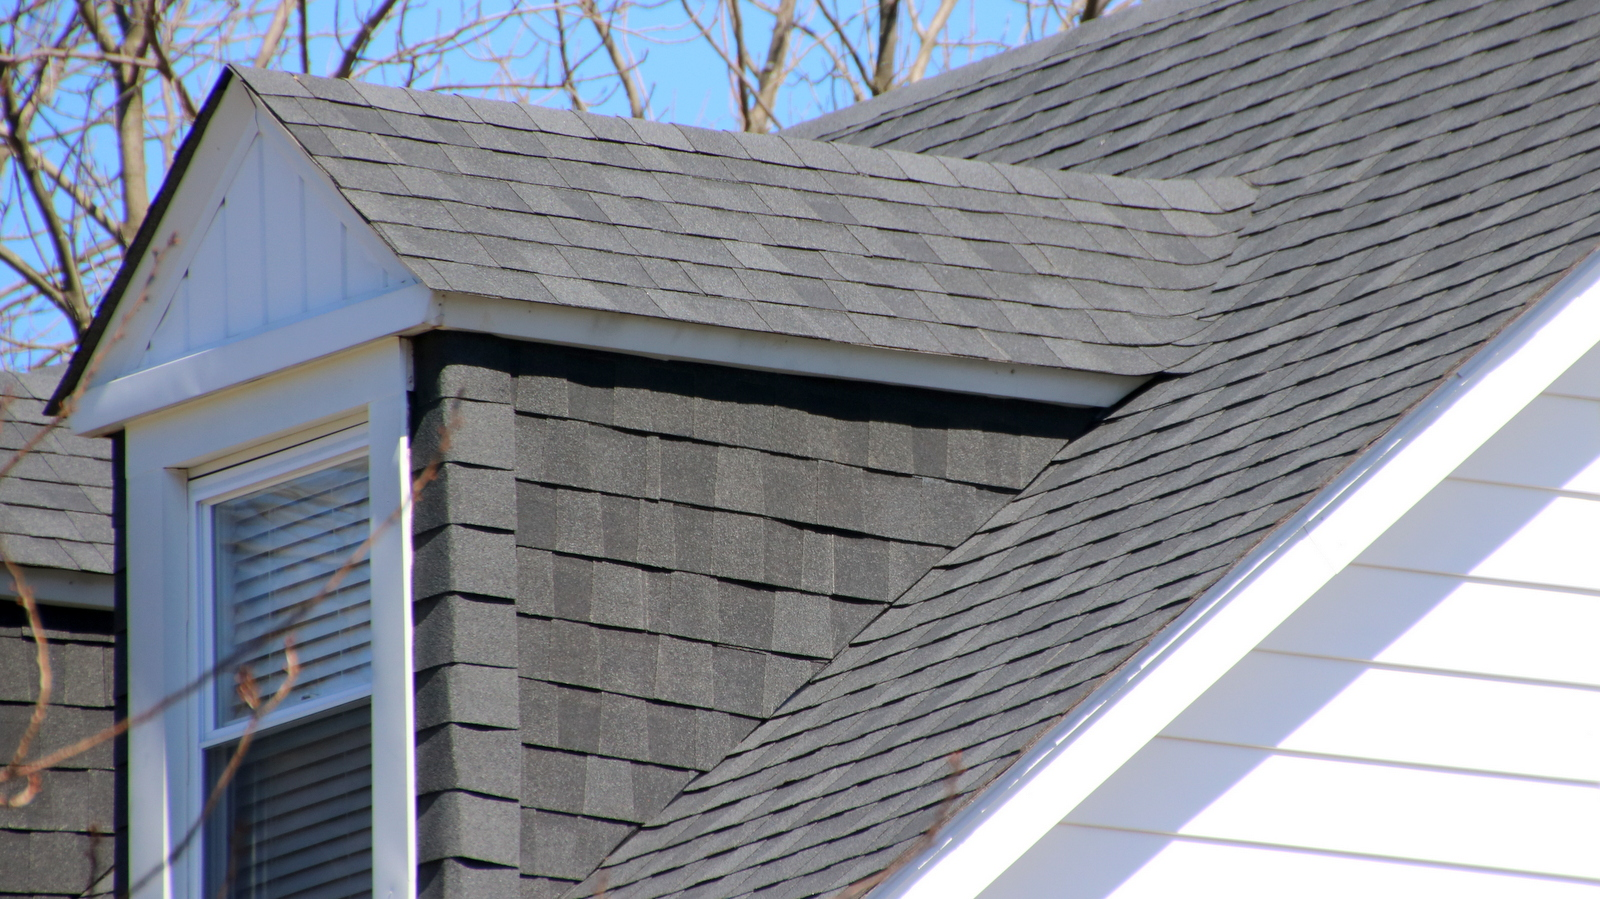 The slate roof on Mayor Catherine Pugh's house on Ellamont Road has been replaced with shingles. (Fern Shen)